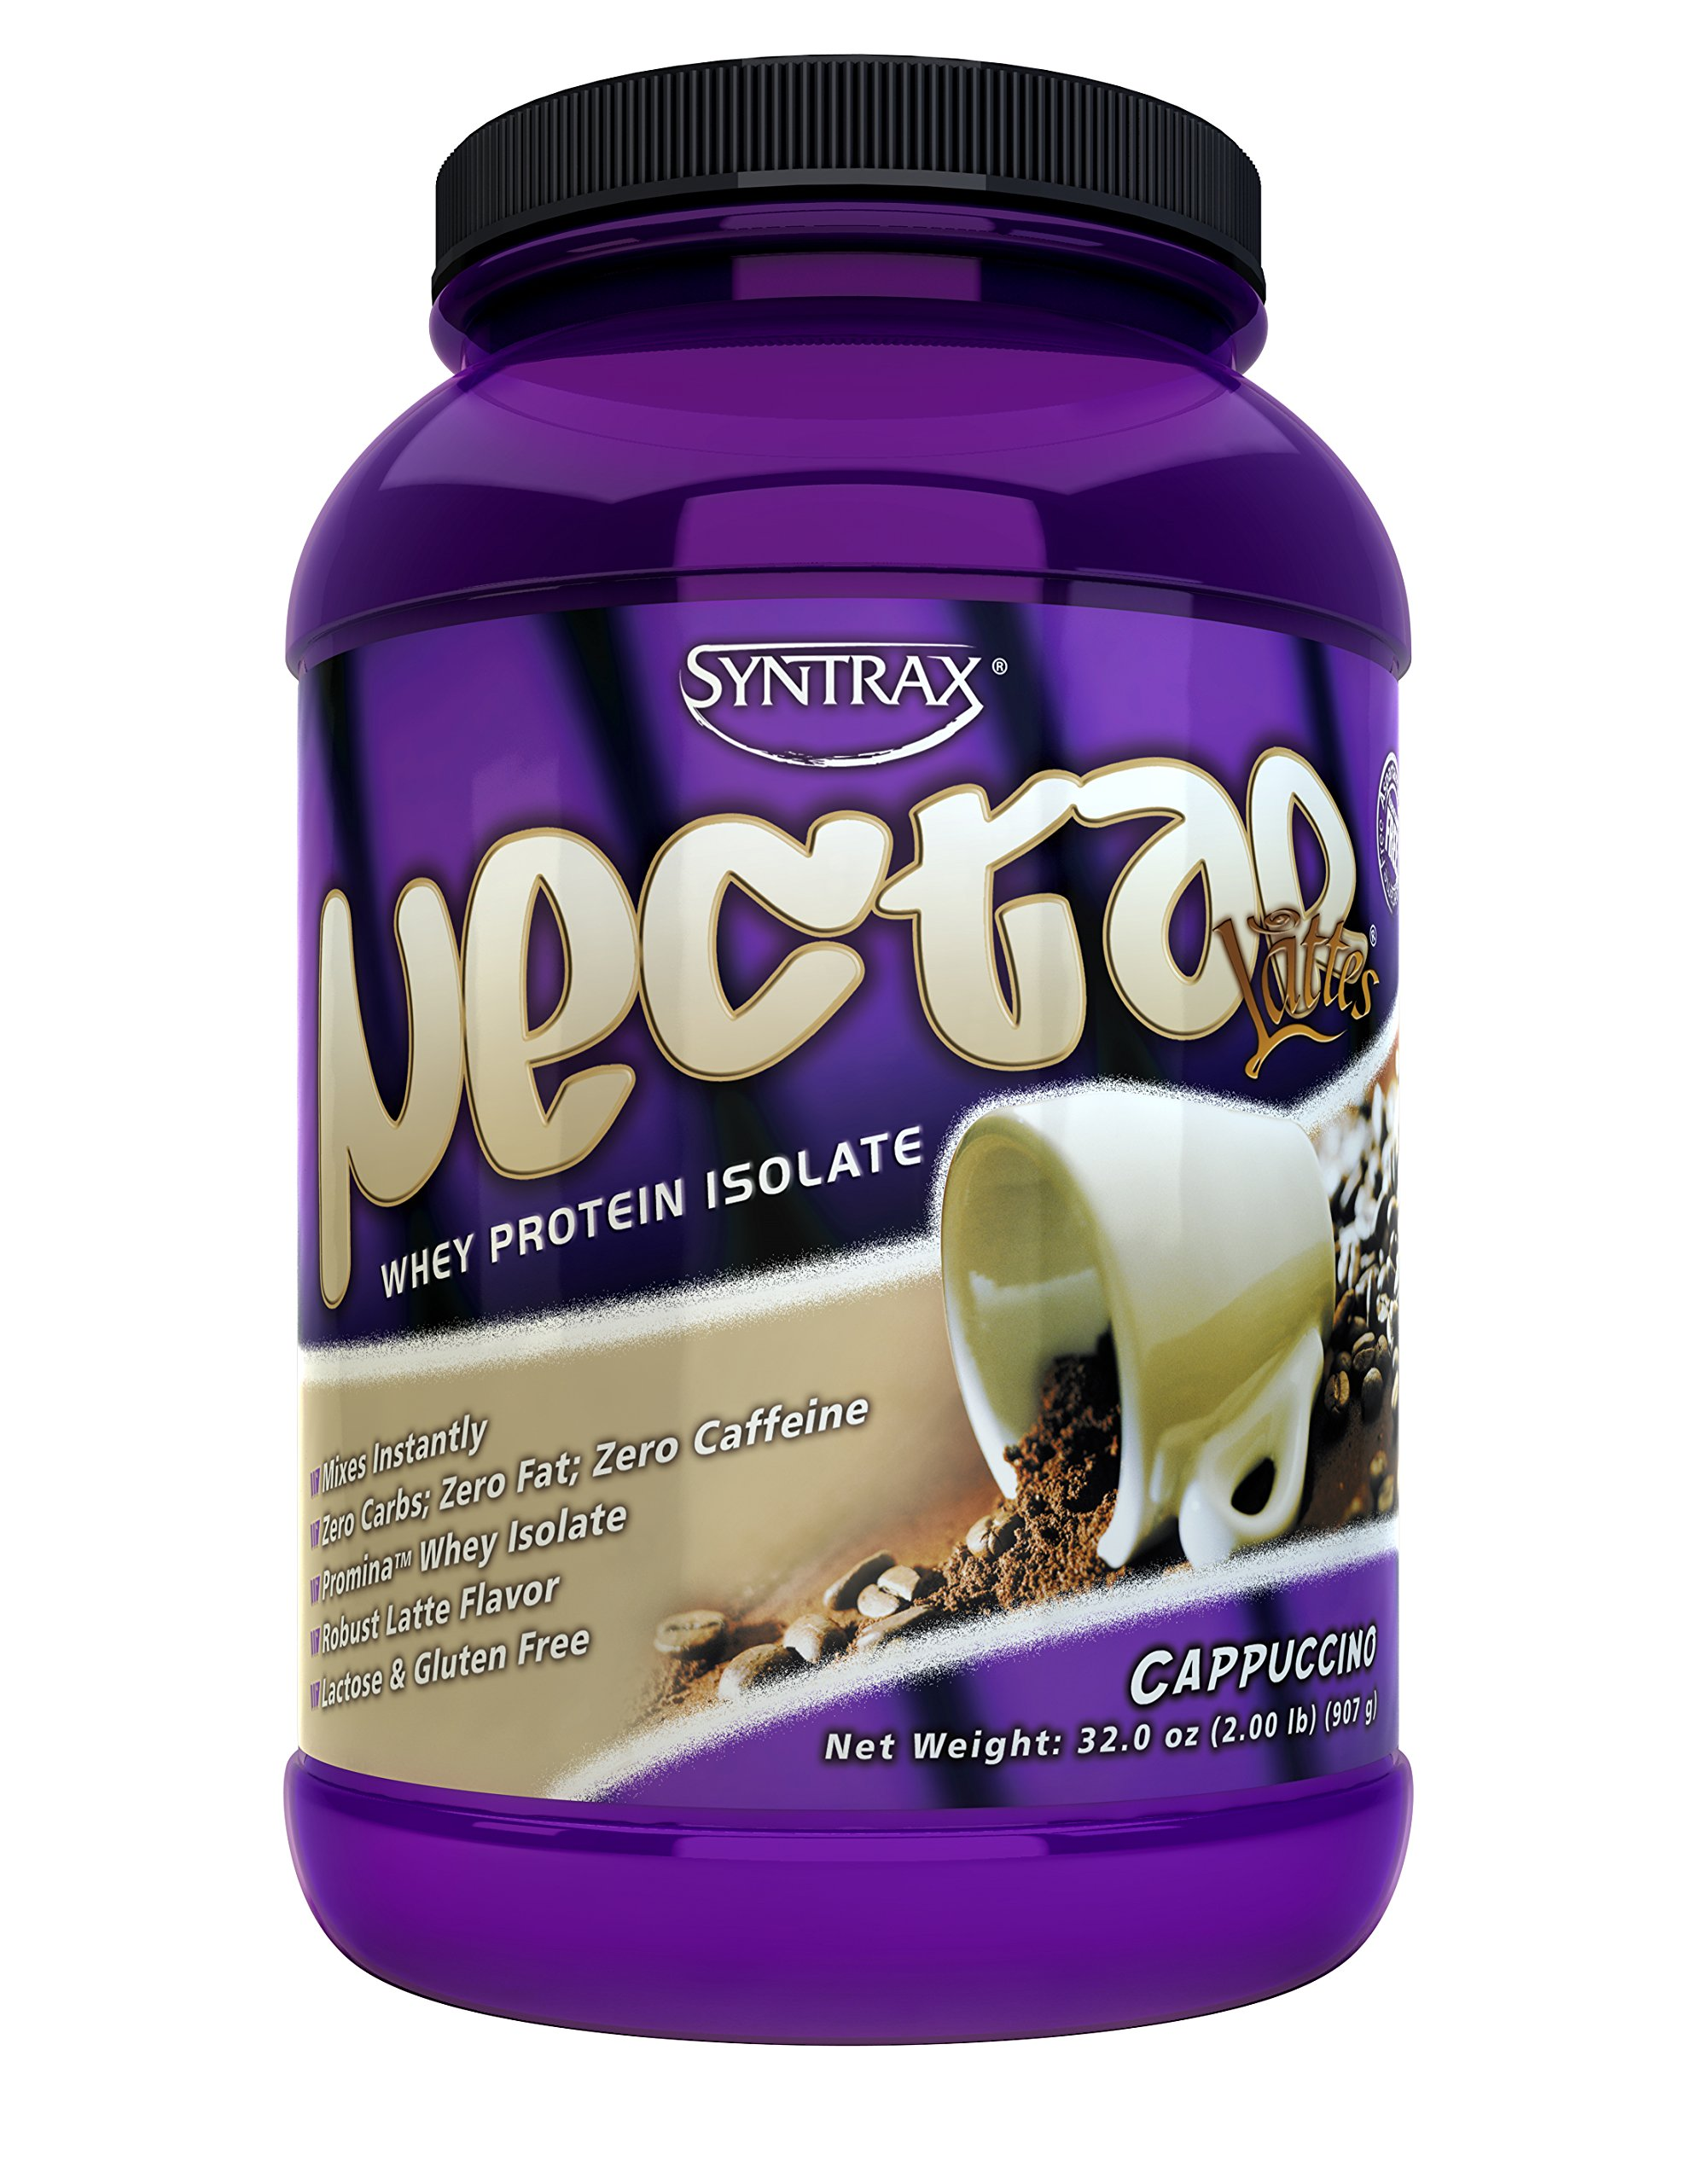 Nectar Lattes, Cappuccino, 2 Pounds by Syntrax